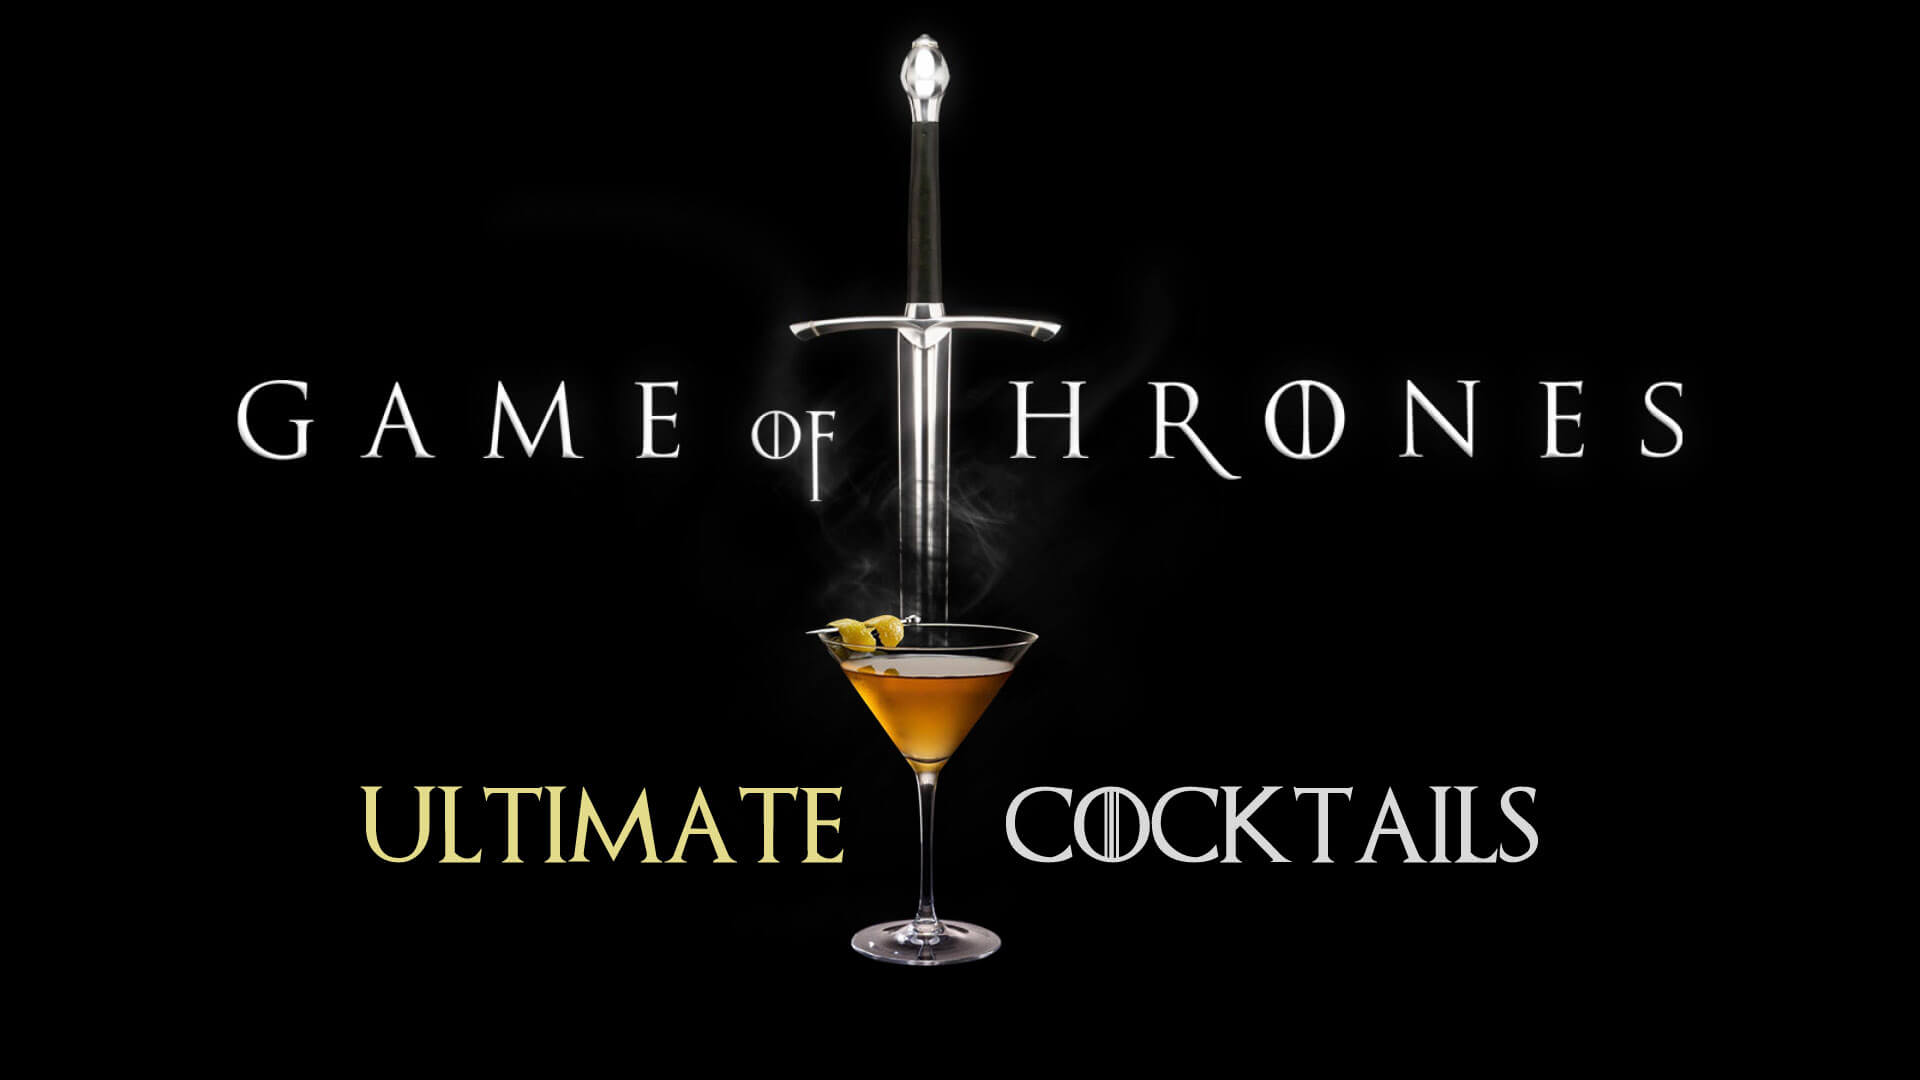 Game of Thrones Ultimate Cocktails List